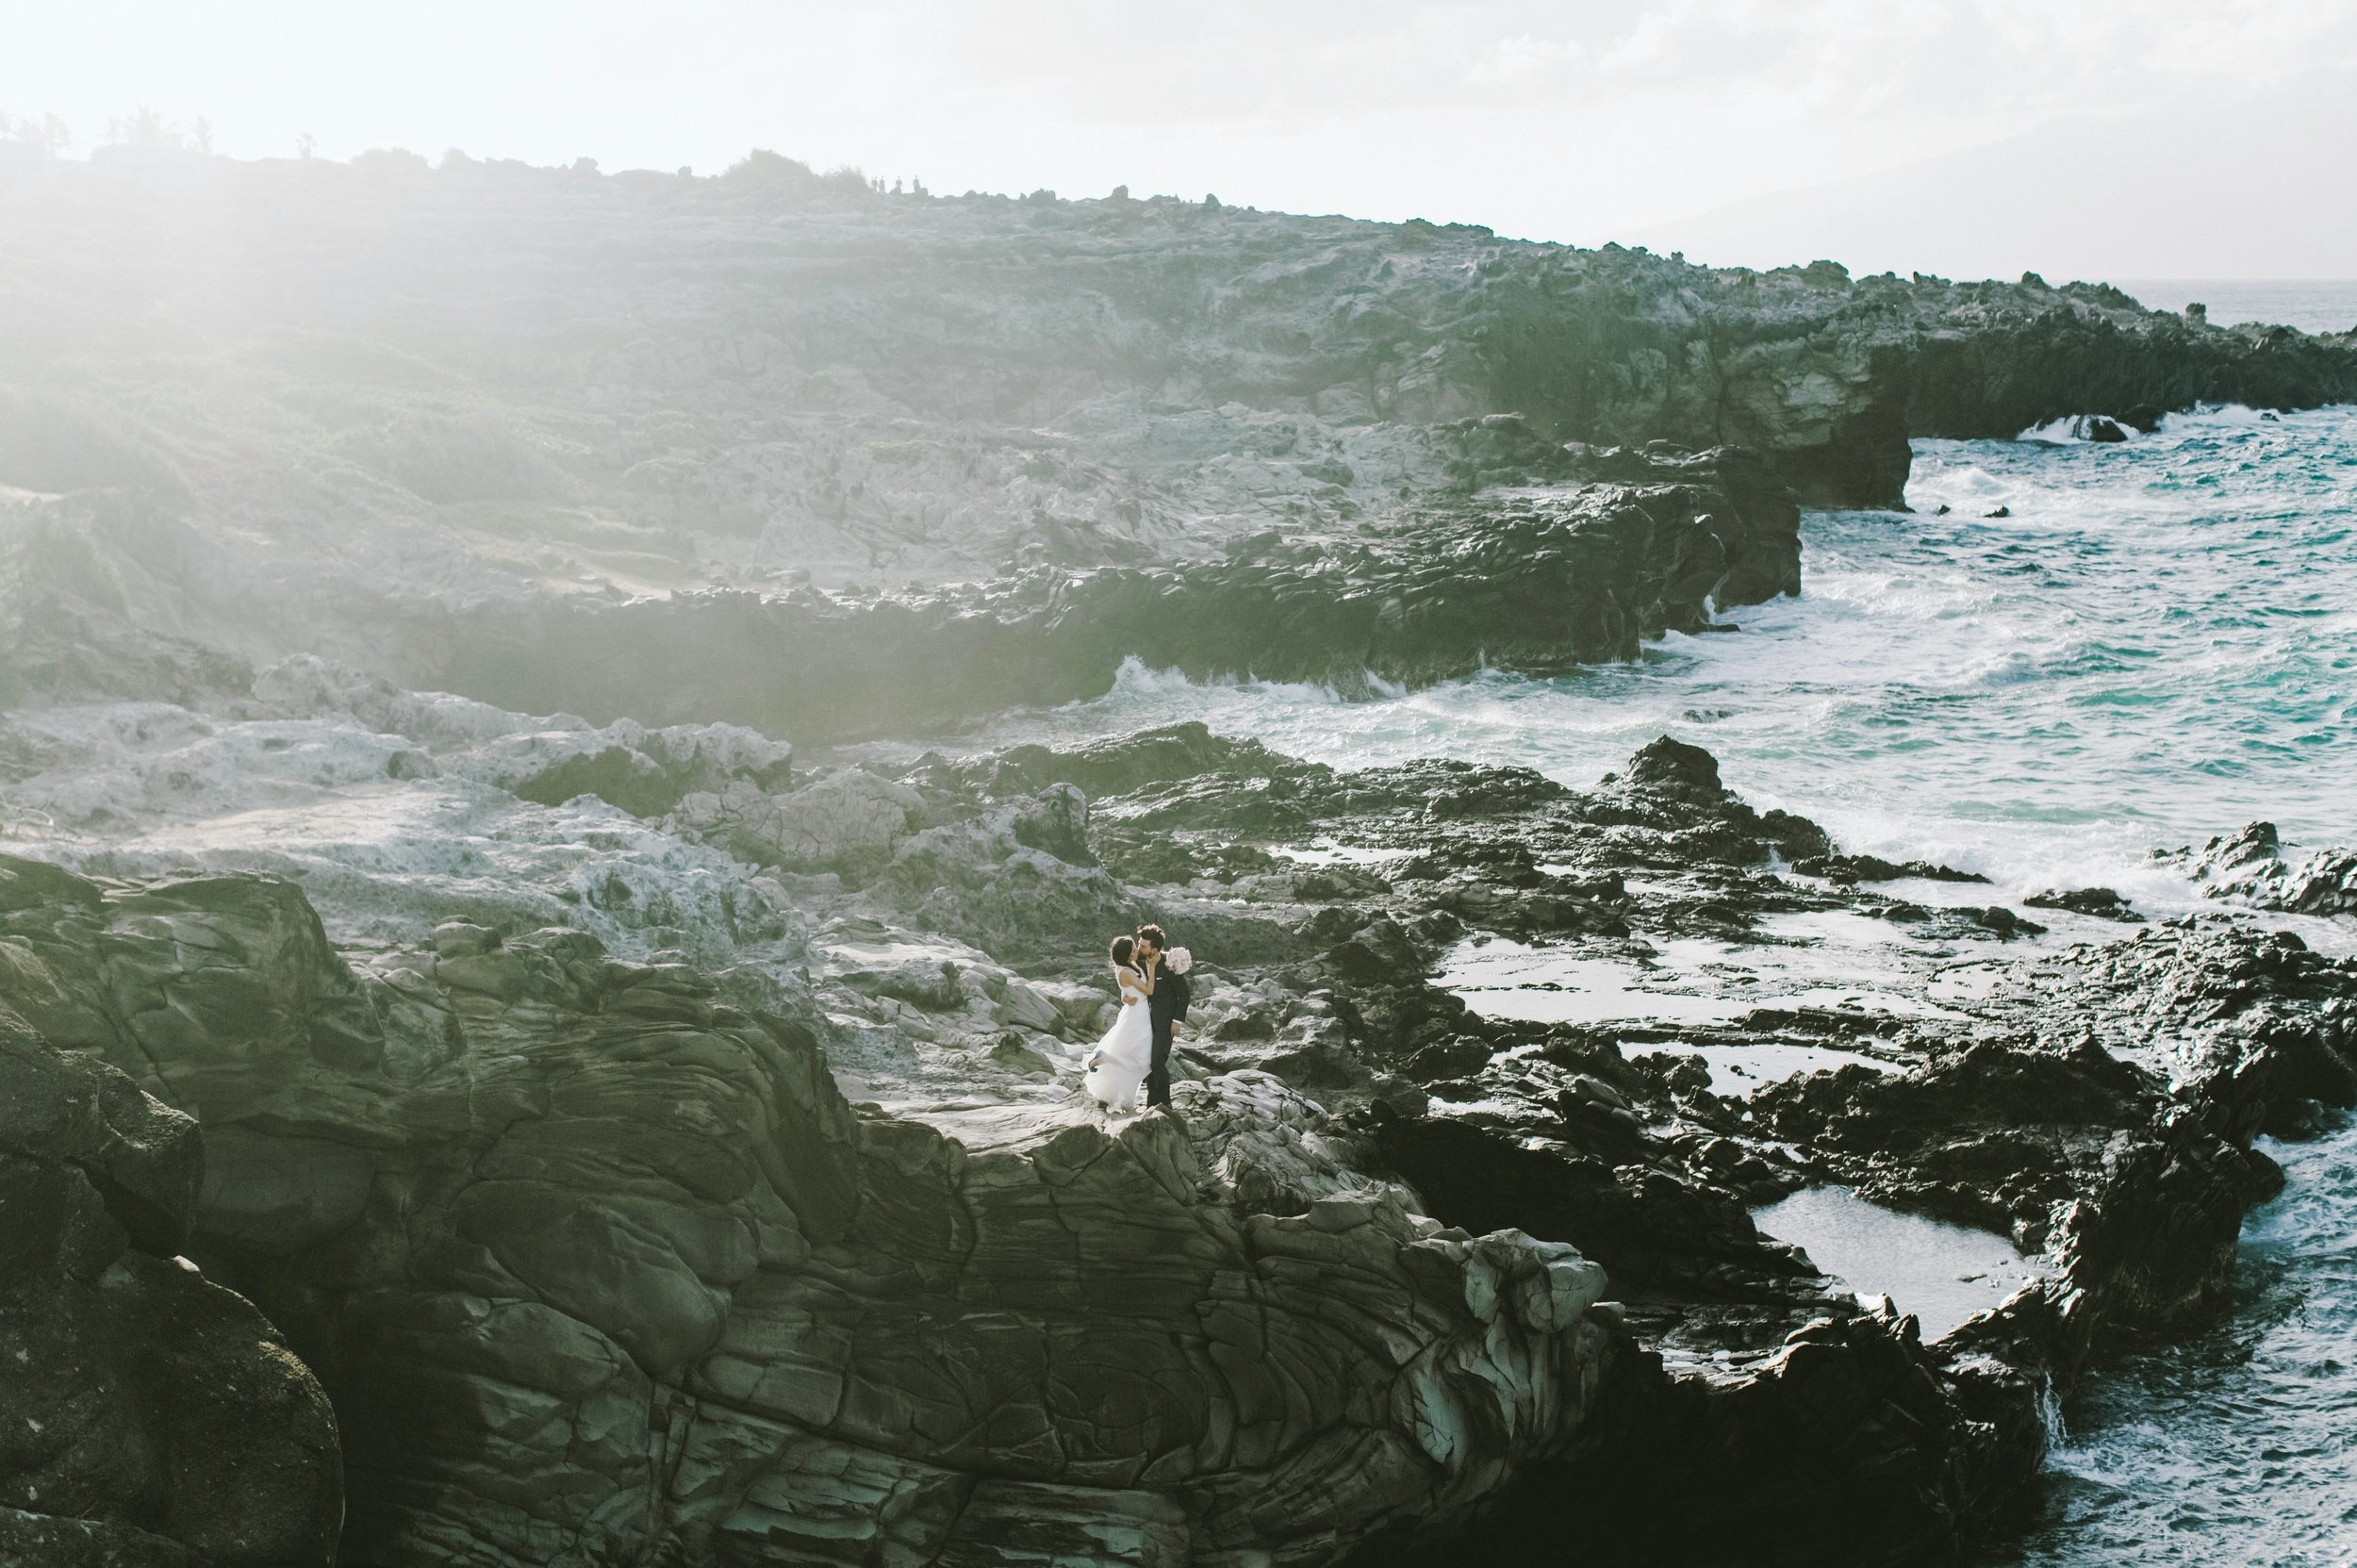 Epic ironwoods clifft view in kapalua for maui wedding photography